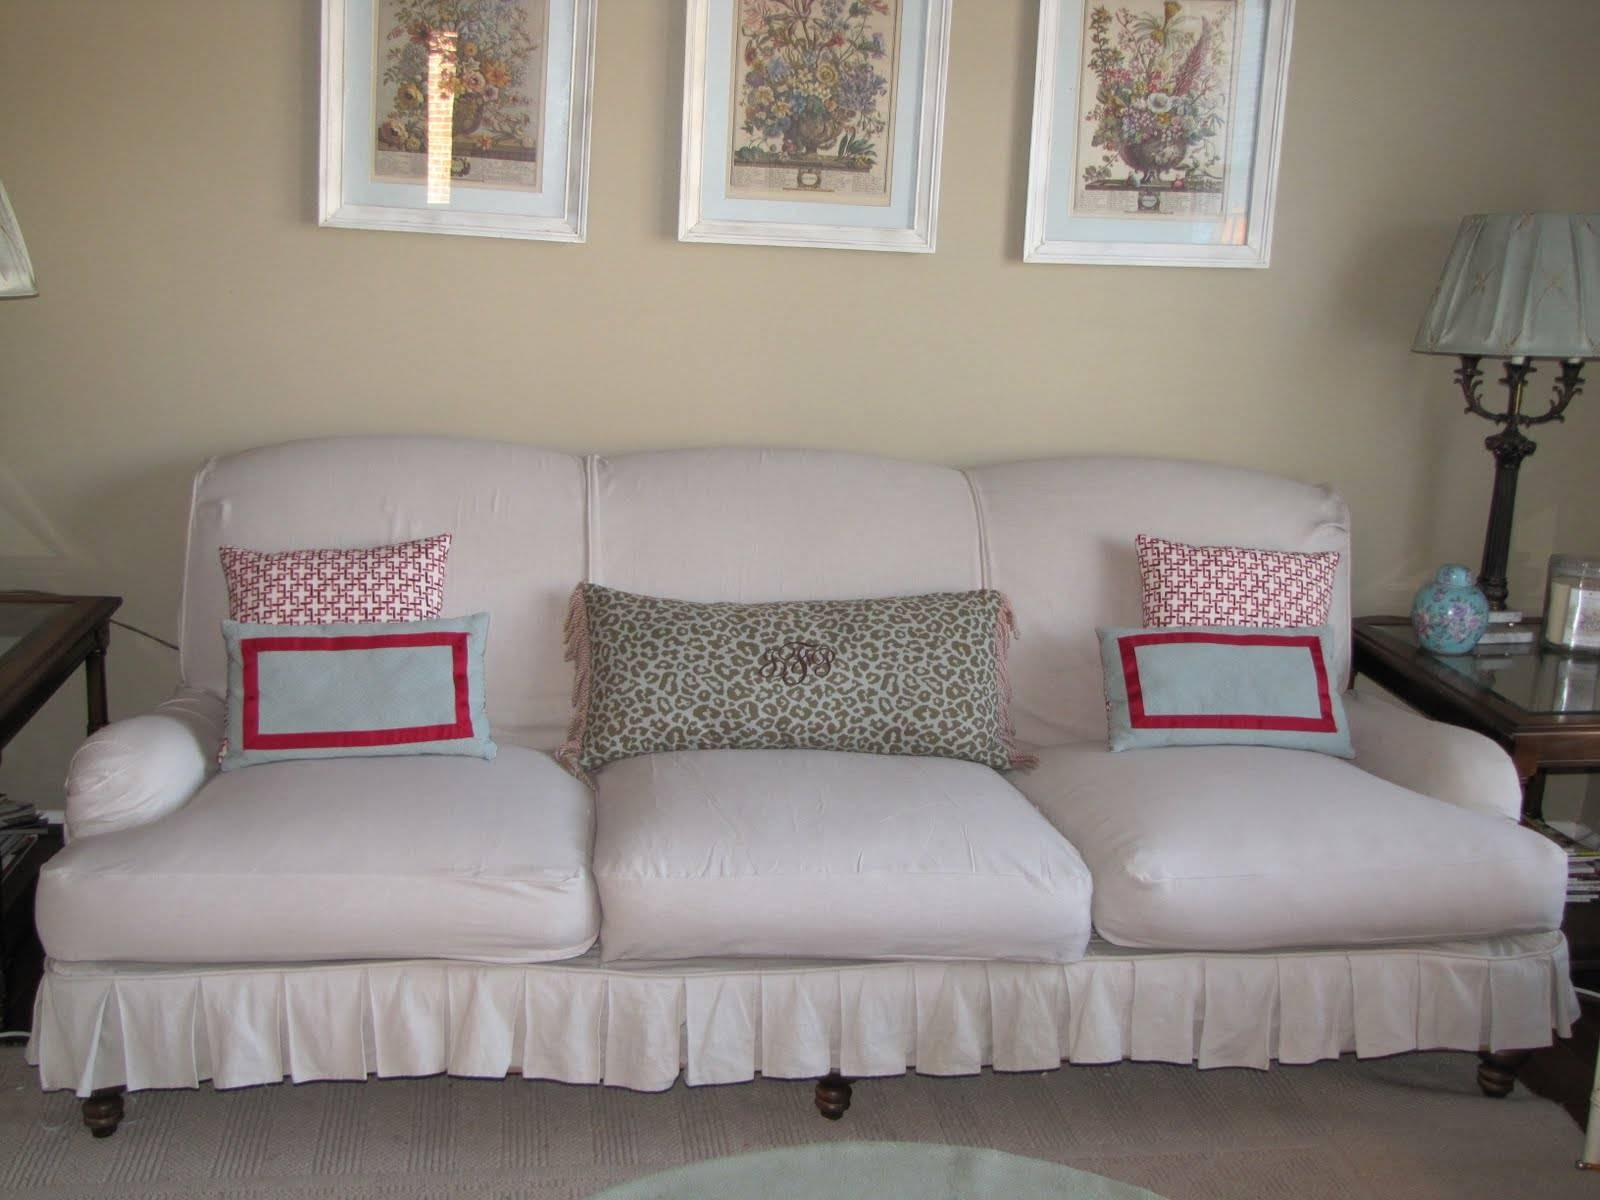 Bibbidi Bobbidi Beautiful: How To Slipcover Sofas And Chairs Regarding Slipcovers For Sofas And Chairs (View 1 of 30)